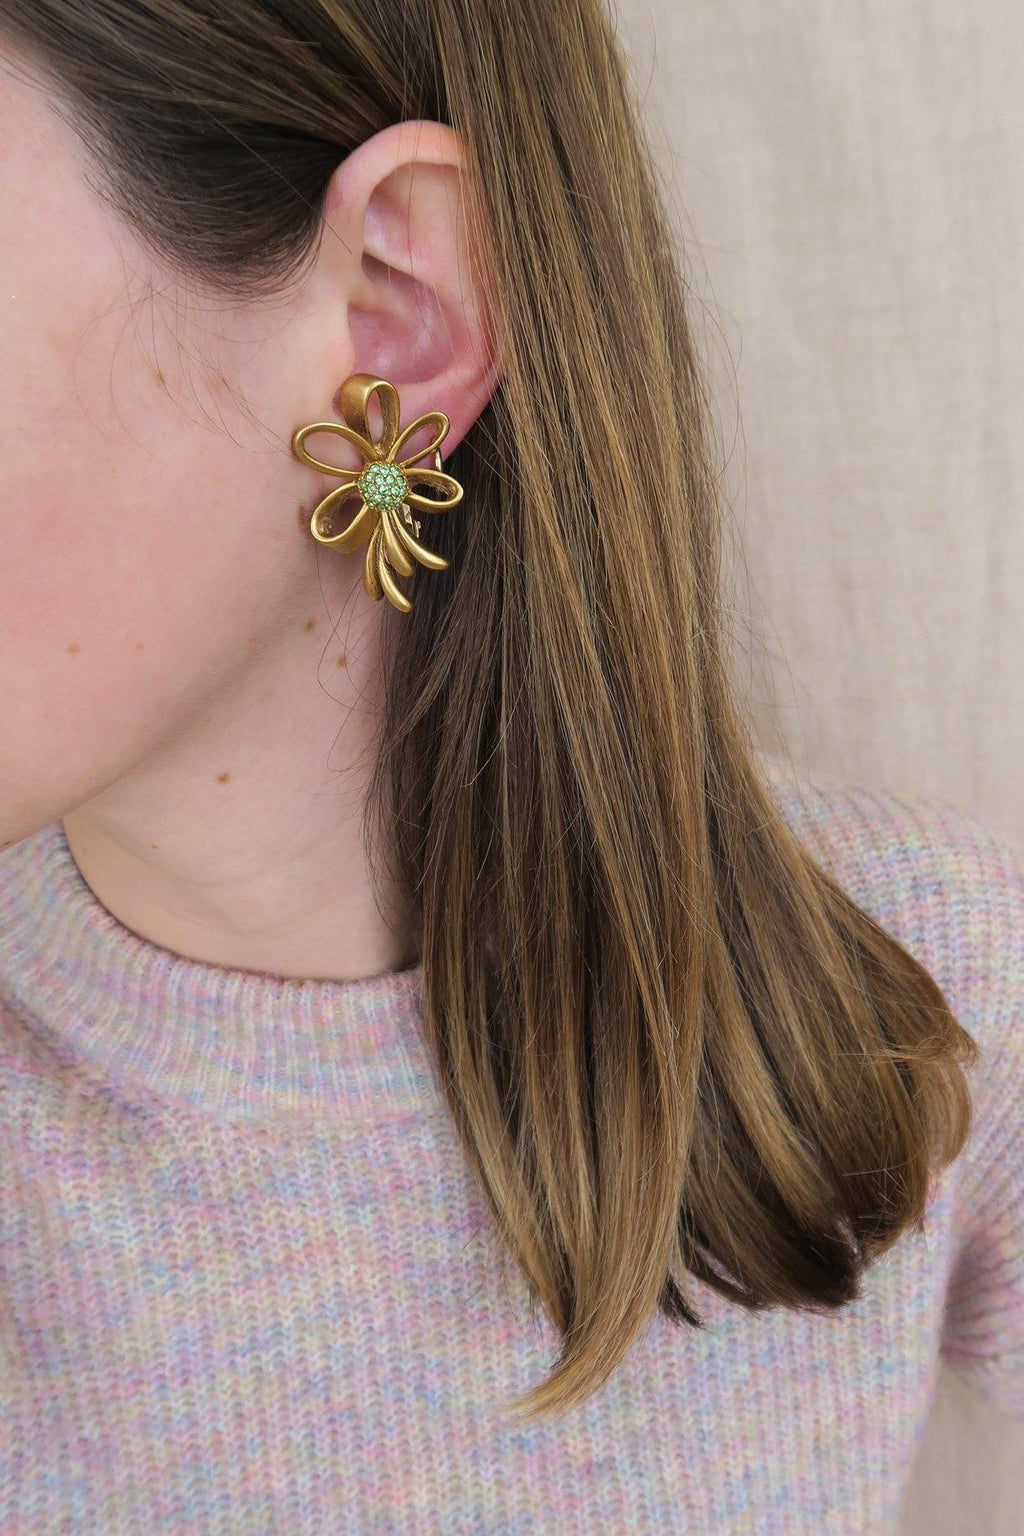 Oscar De La Renta Bow Clip-on Earrings